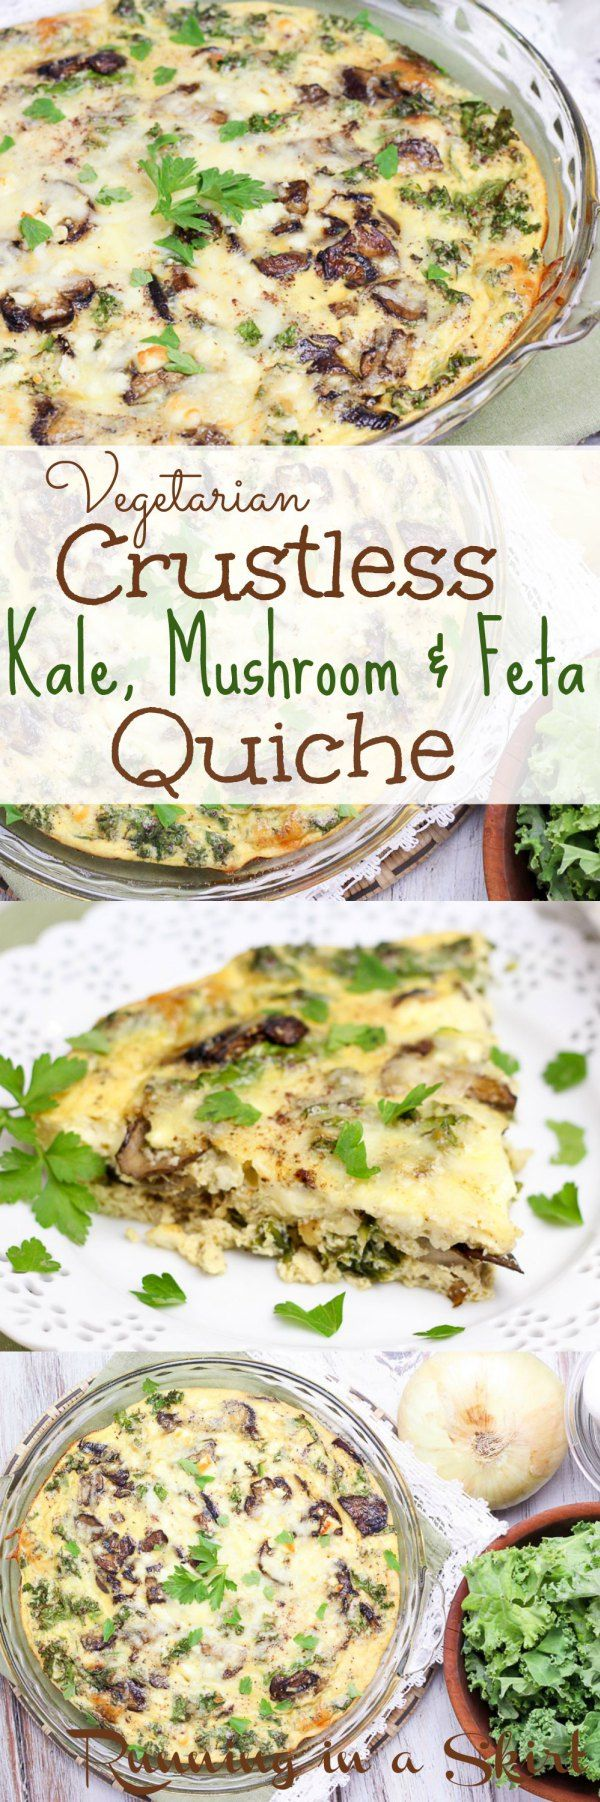 Crustless Kale Quiche Vegetarian Crustless Quiche- Includes healthy ...